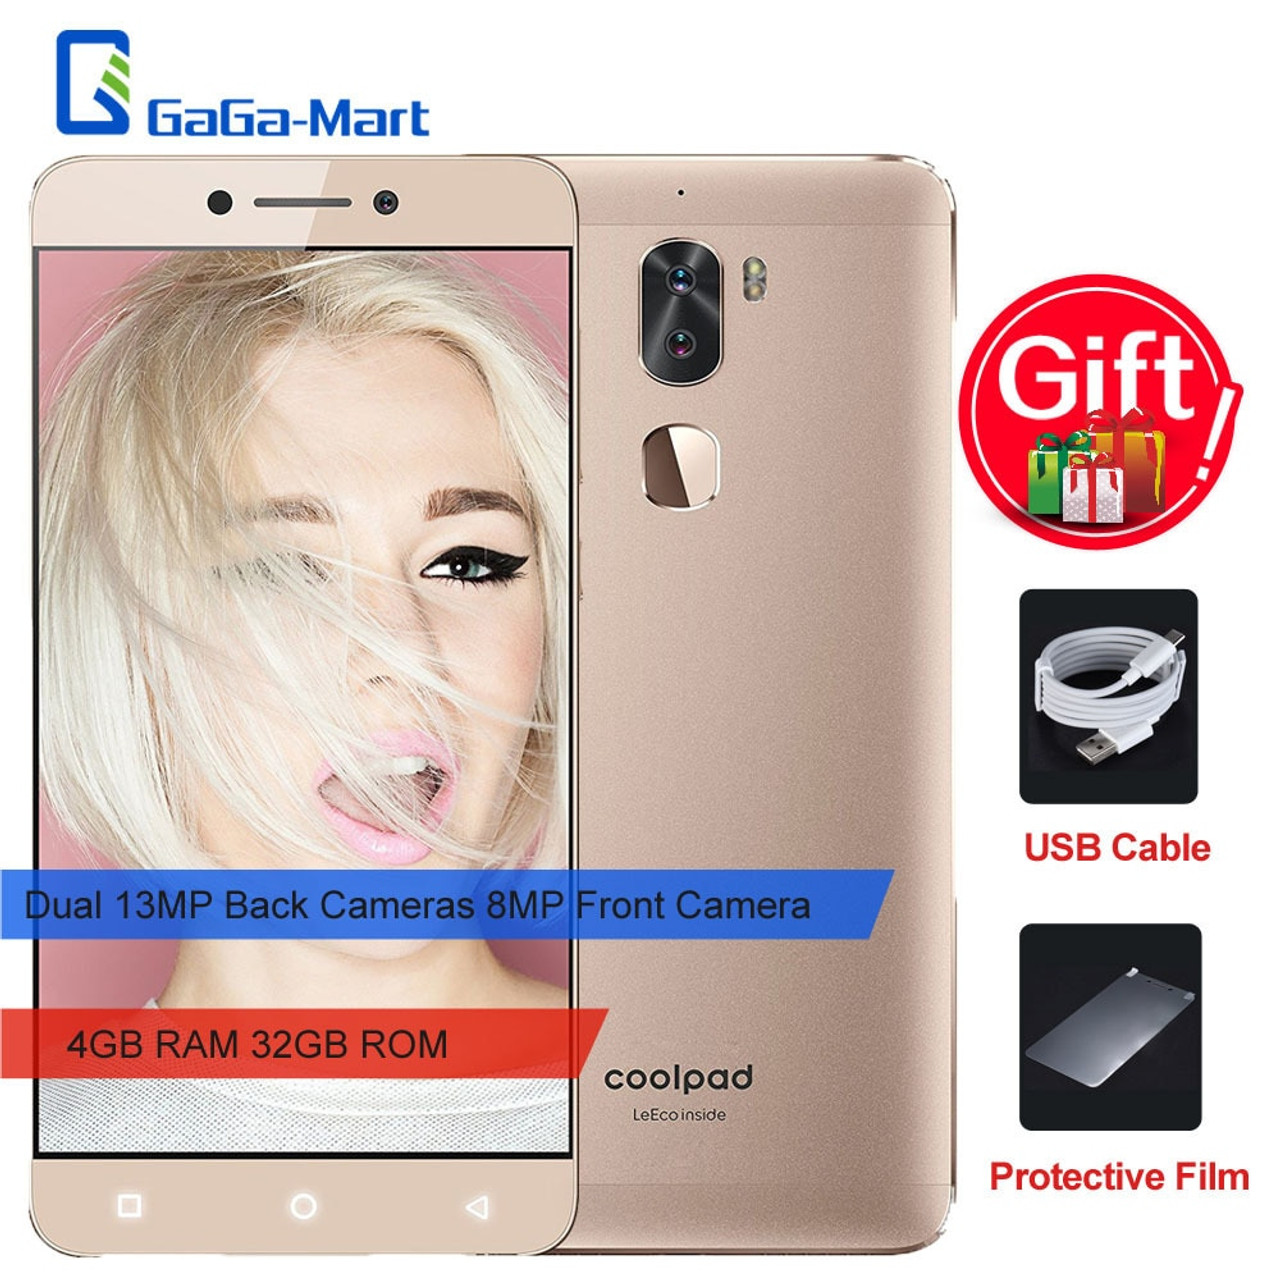 Letv leeco Coolpad Cool 1 Smartphone 5 5-Inch 4GB RAM 32GB ROM Dual 13MP  Back 8MP Front Camera Recognition 4000mAh phone